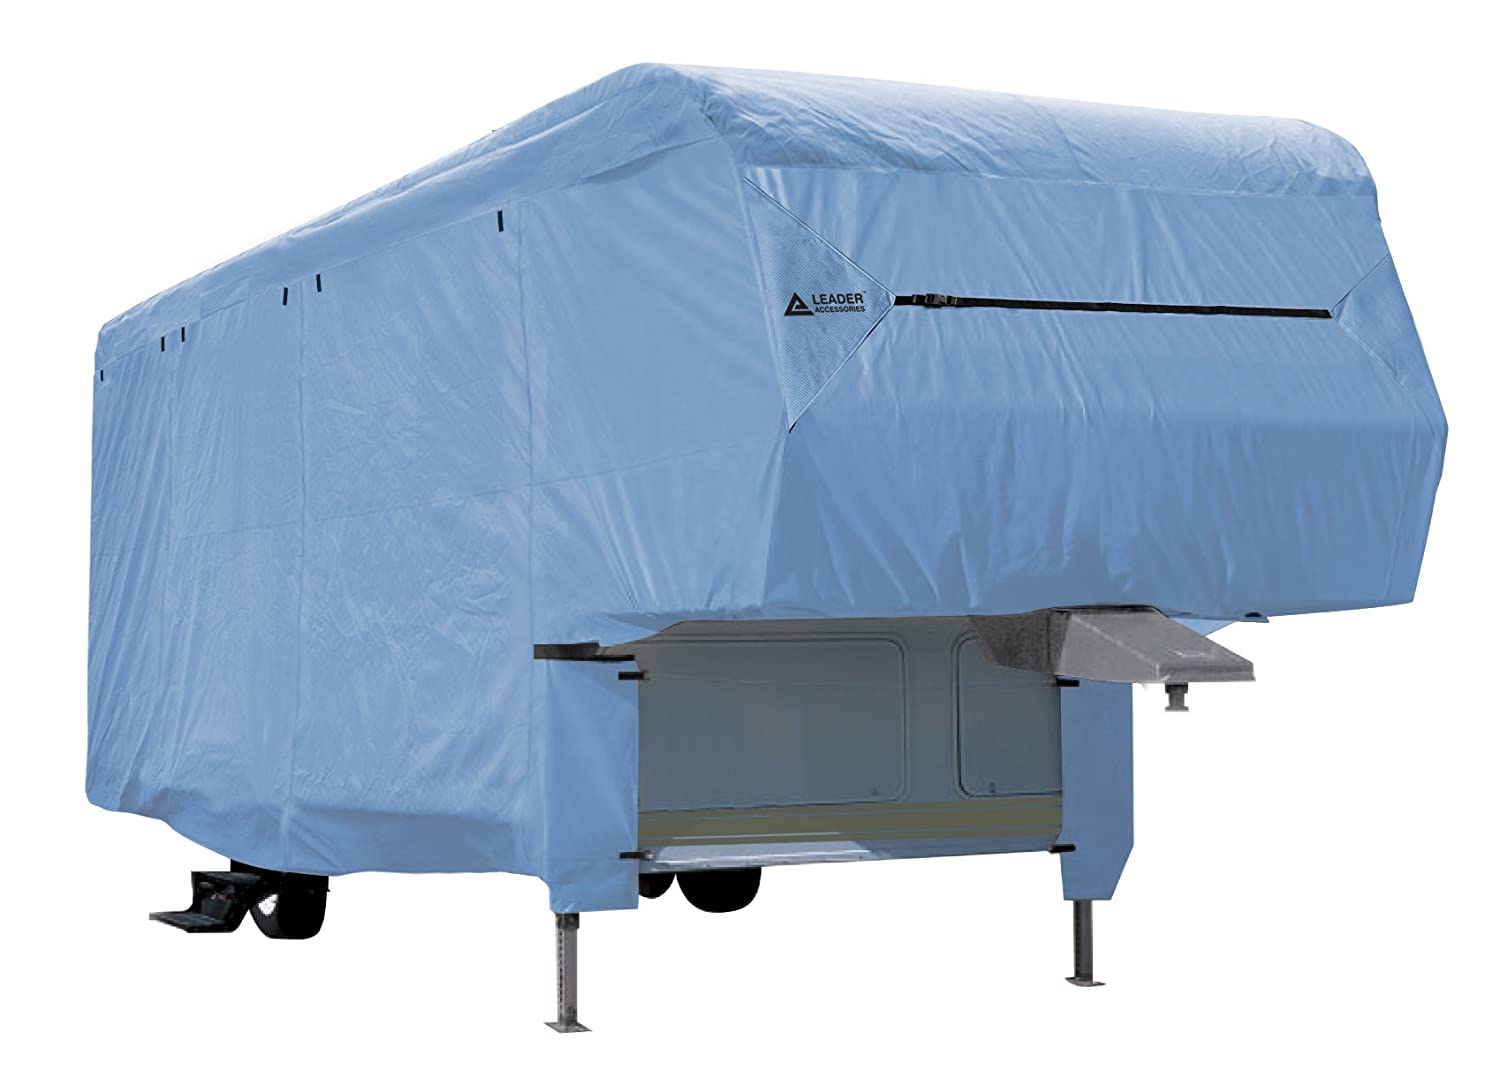 Leader Accessories 5th Wheel Rv Cover Fits RV Outdoor Protect (33'-37')